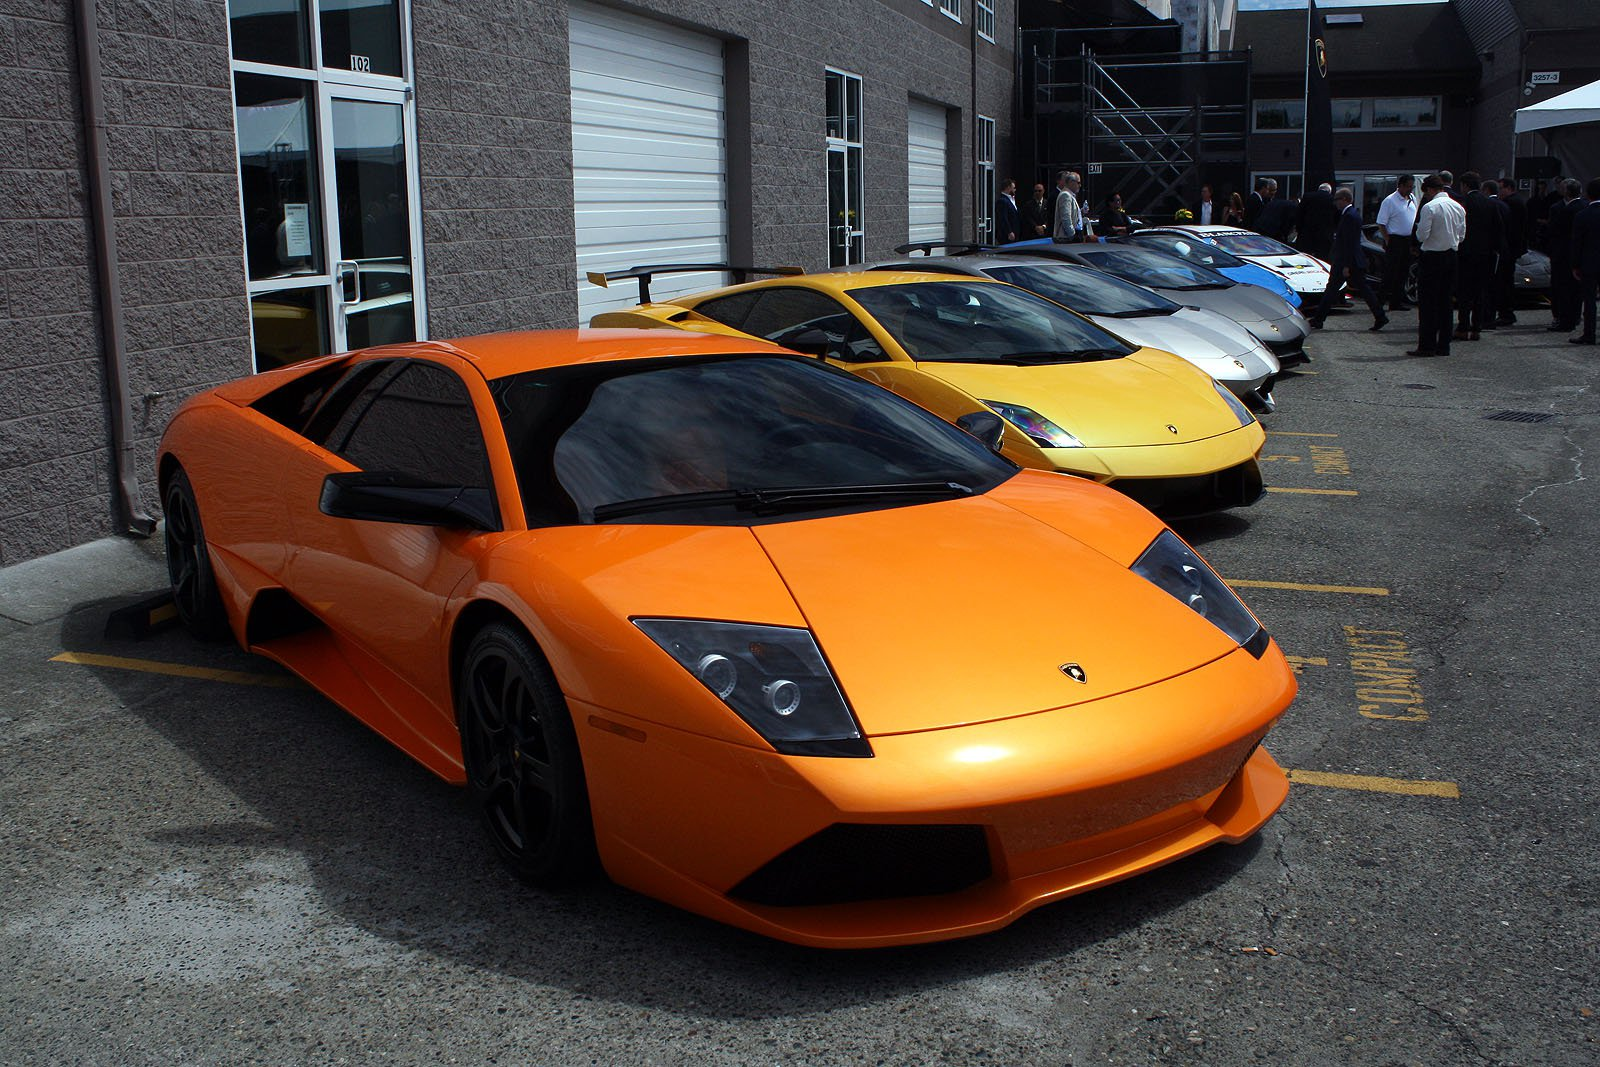 Gallery: Sexy Lamborghinis Attend Grand Opening of New Carbon Fiber Lab